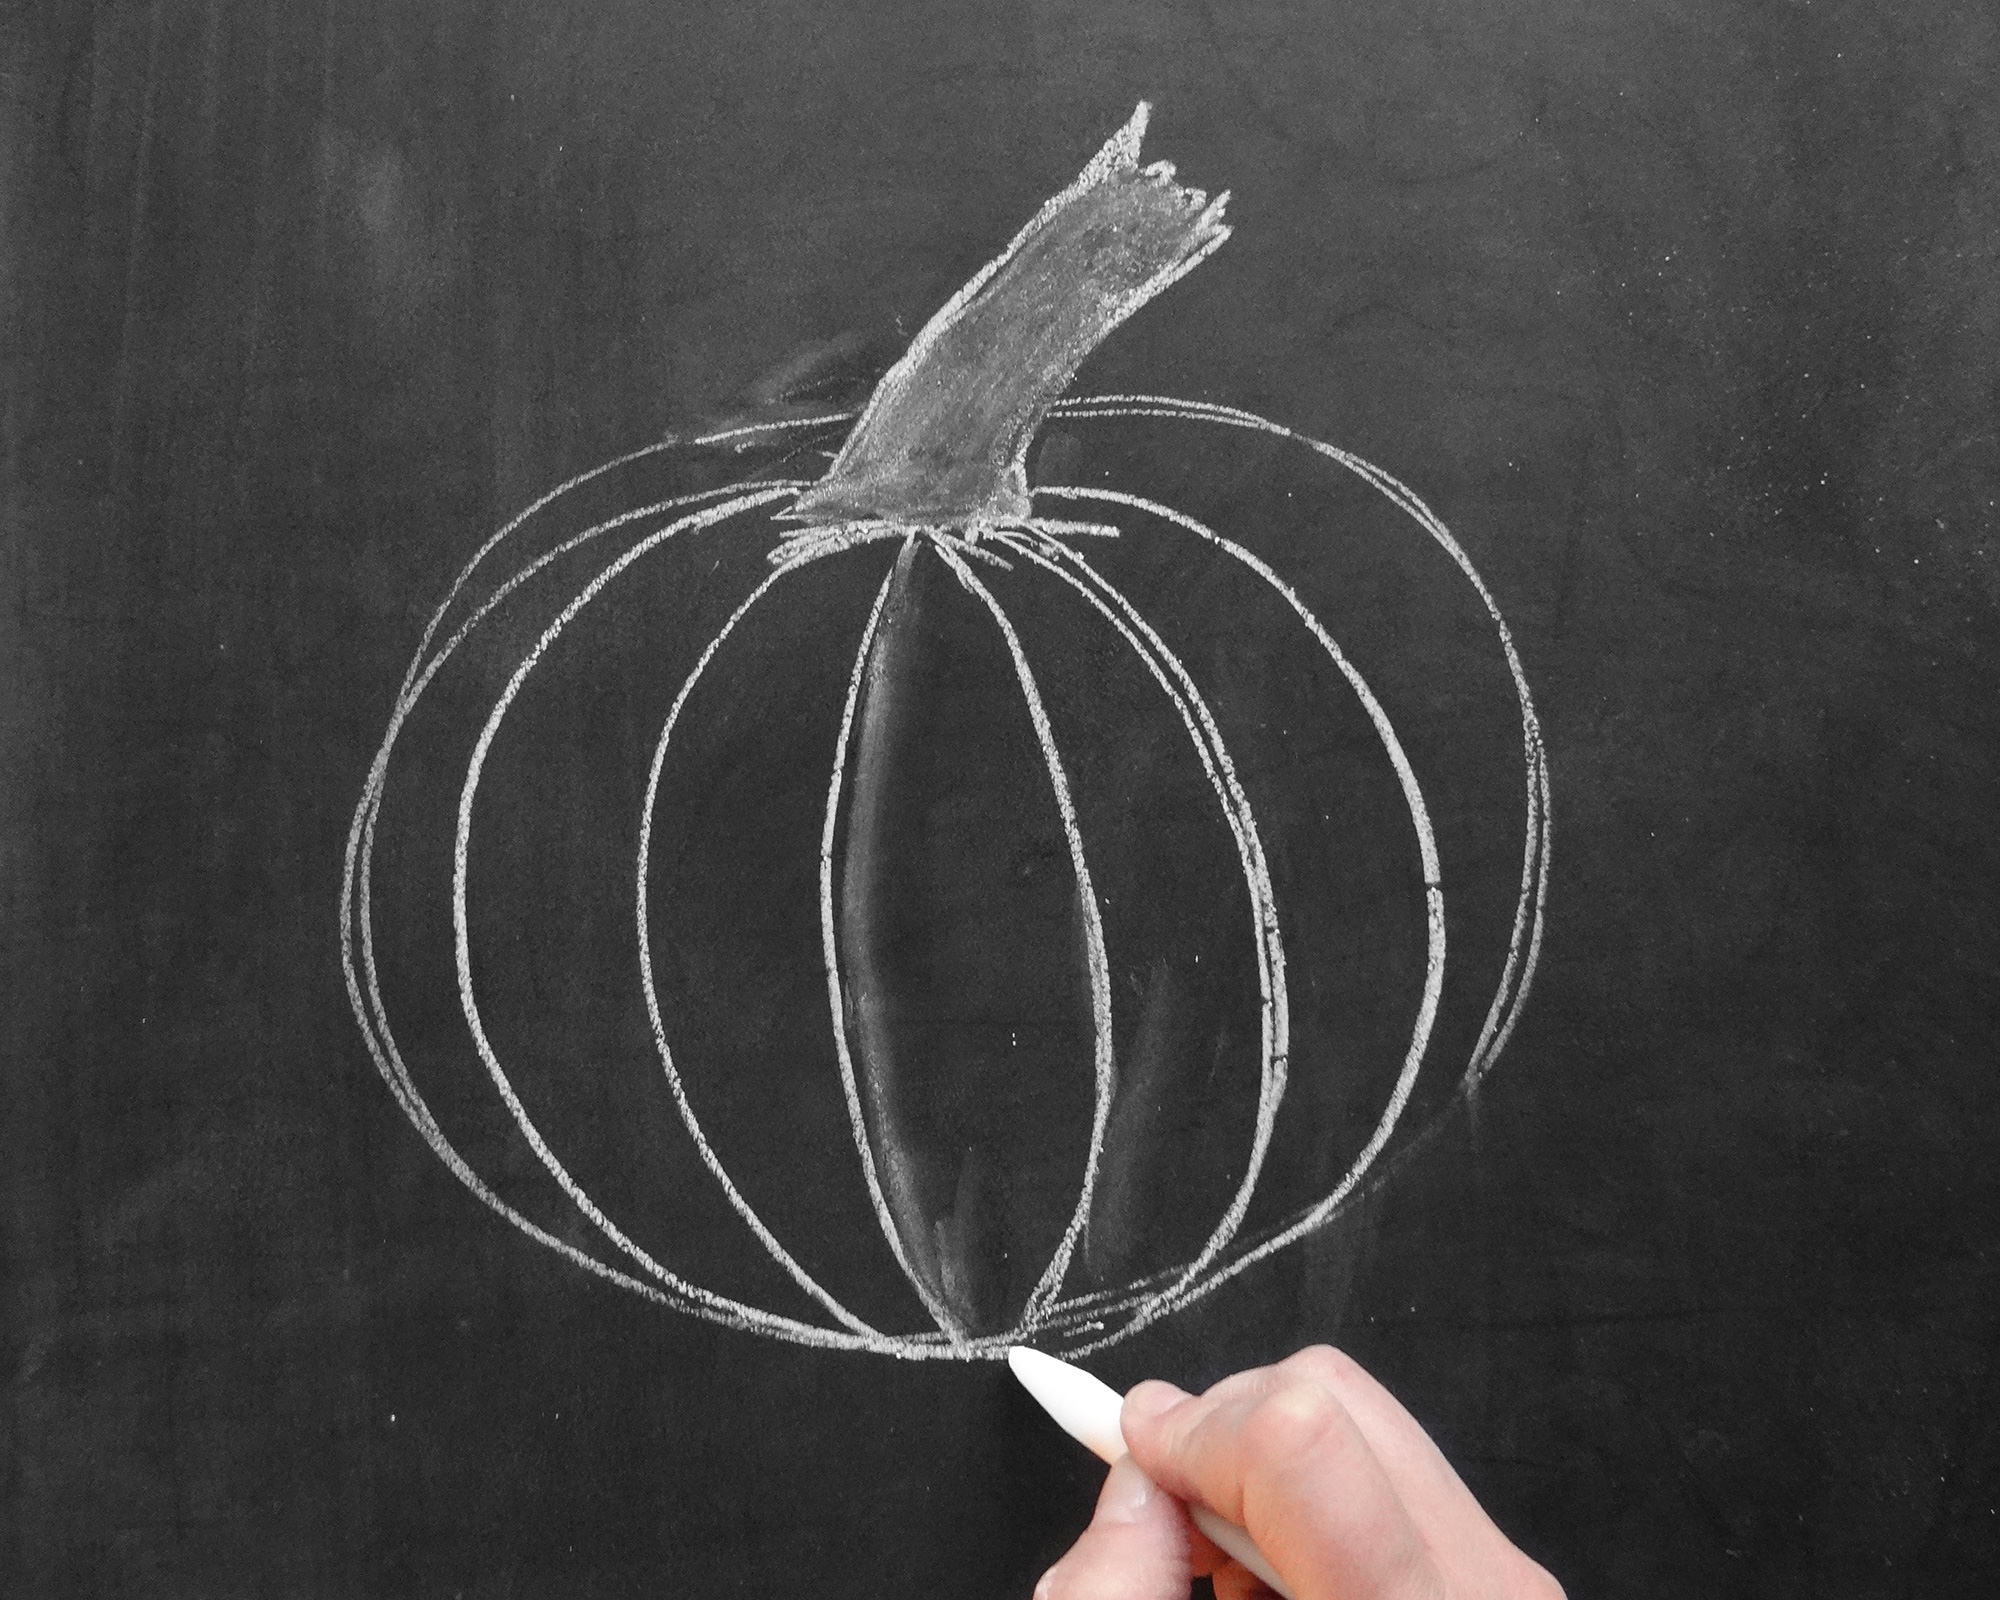 Valerie McKeehan breaks down the steps for how to draw a chalk art pumpkin.